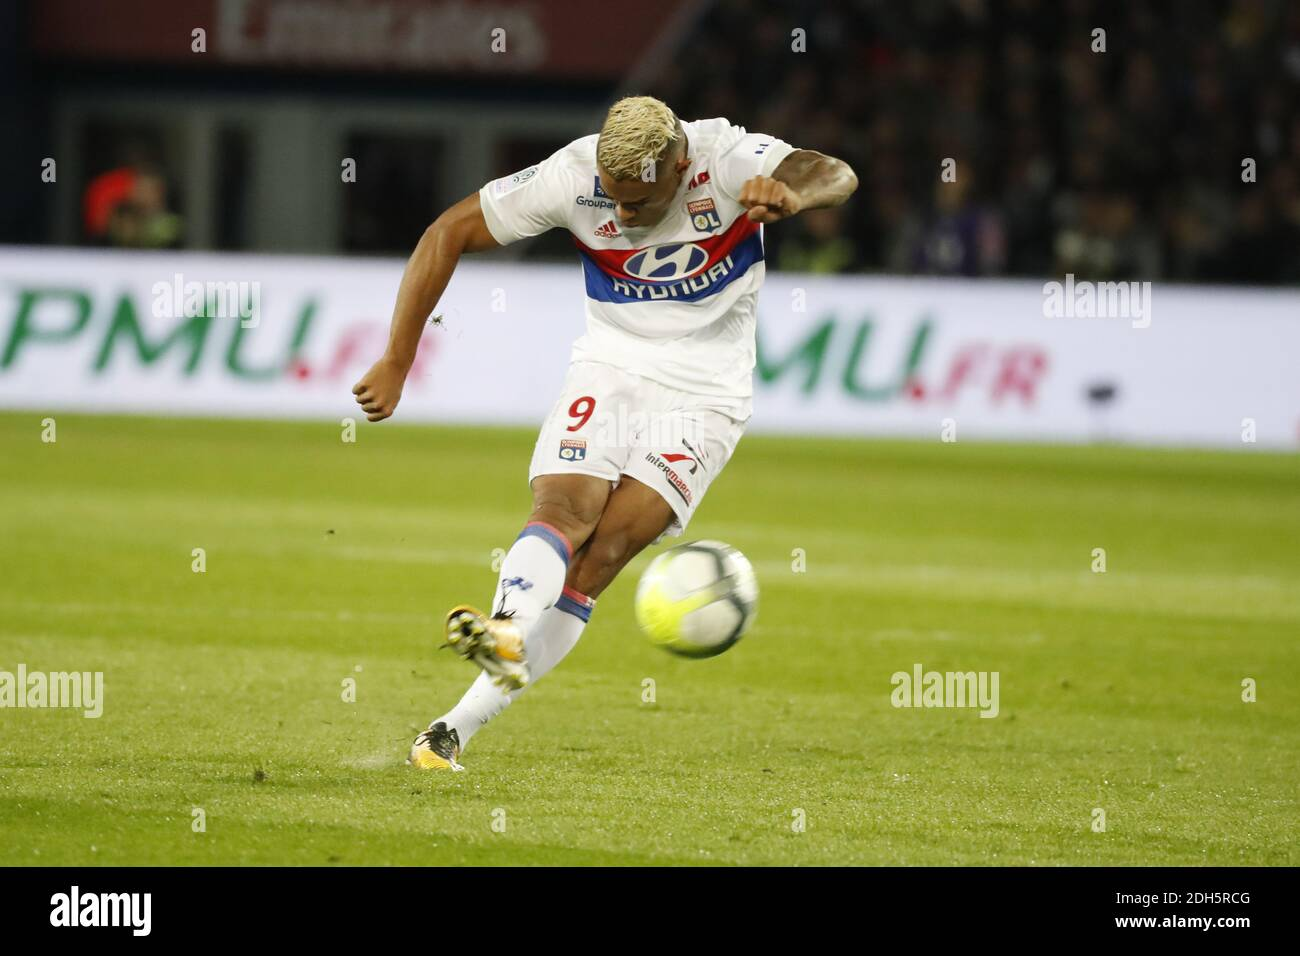 Mariano Diaz High Resolution Stock Photography and Images - Alamy